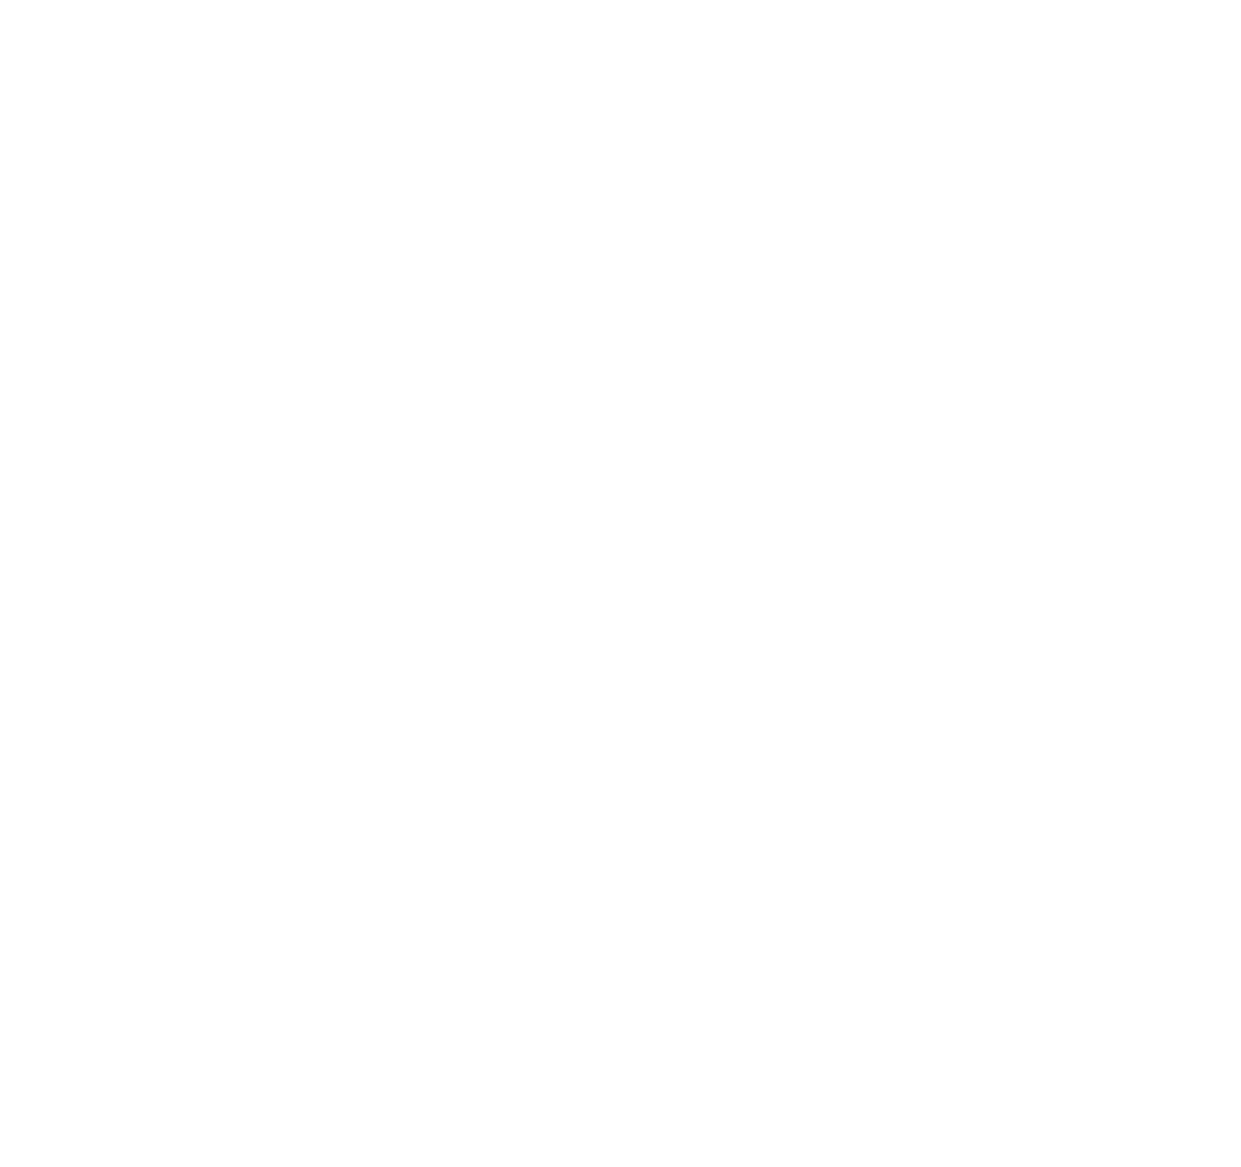 Midrand Veterinary Hospital